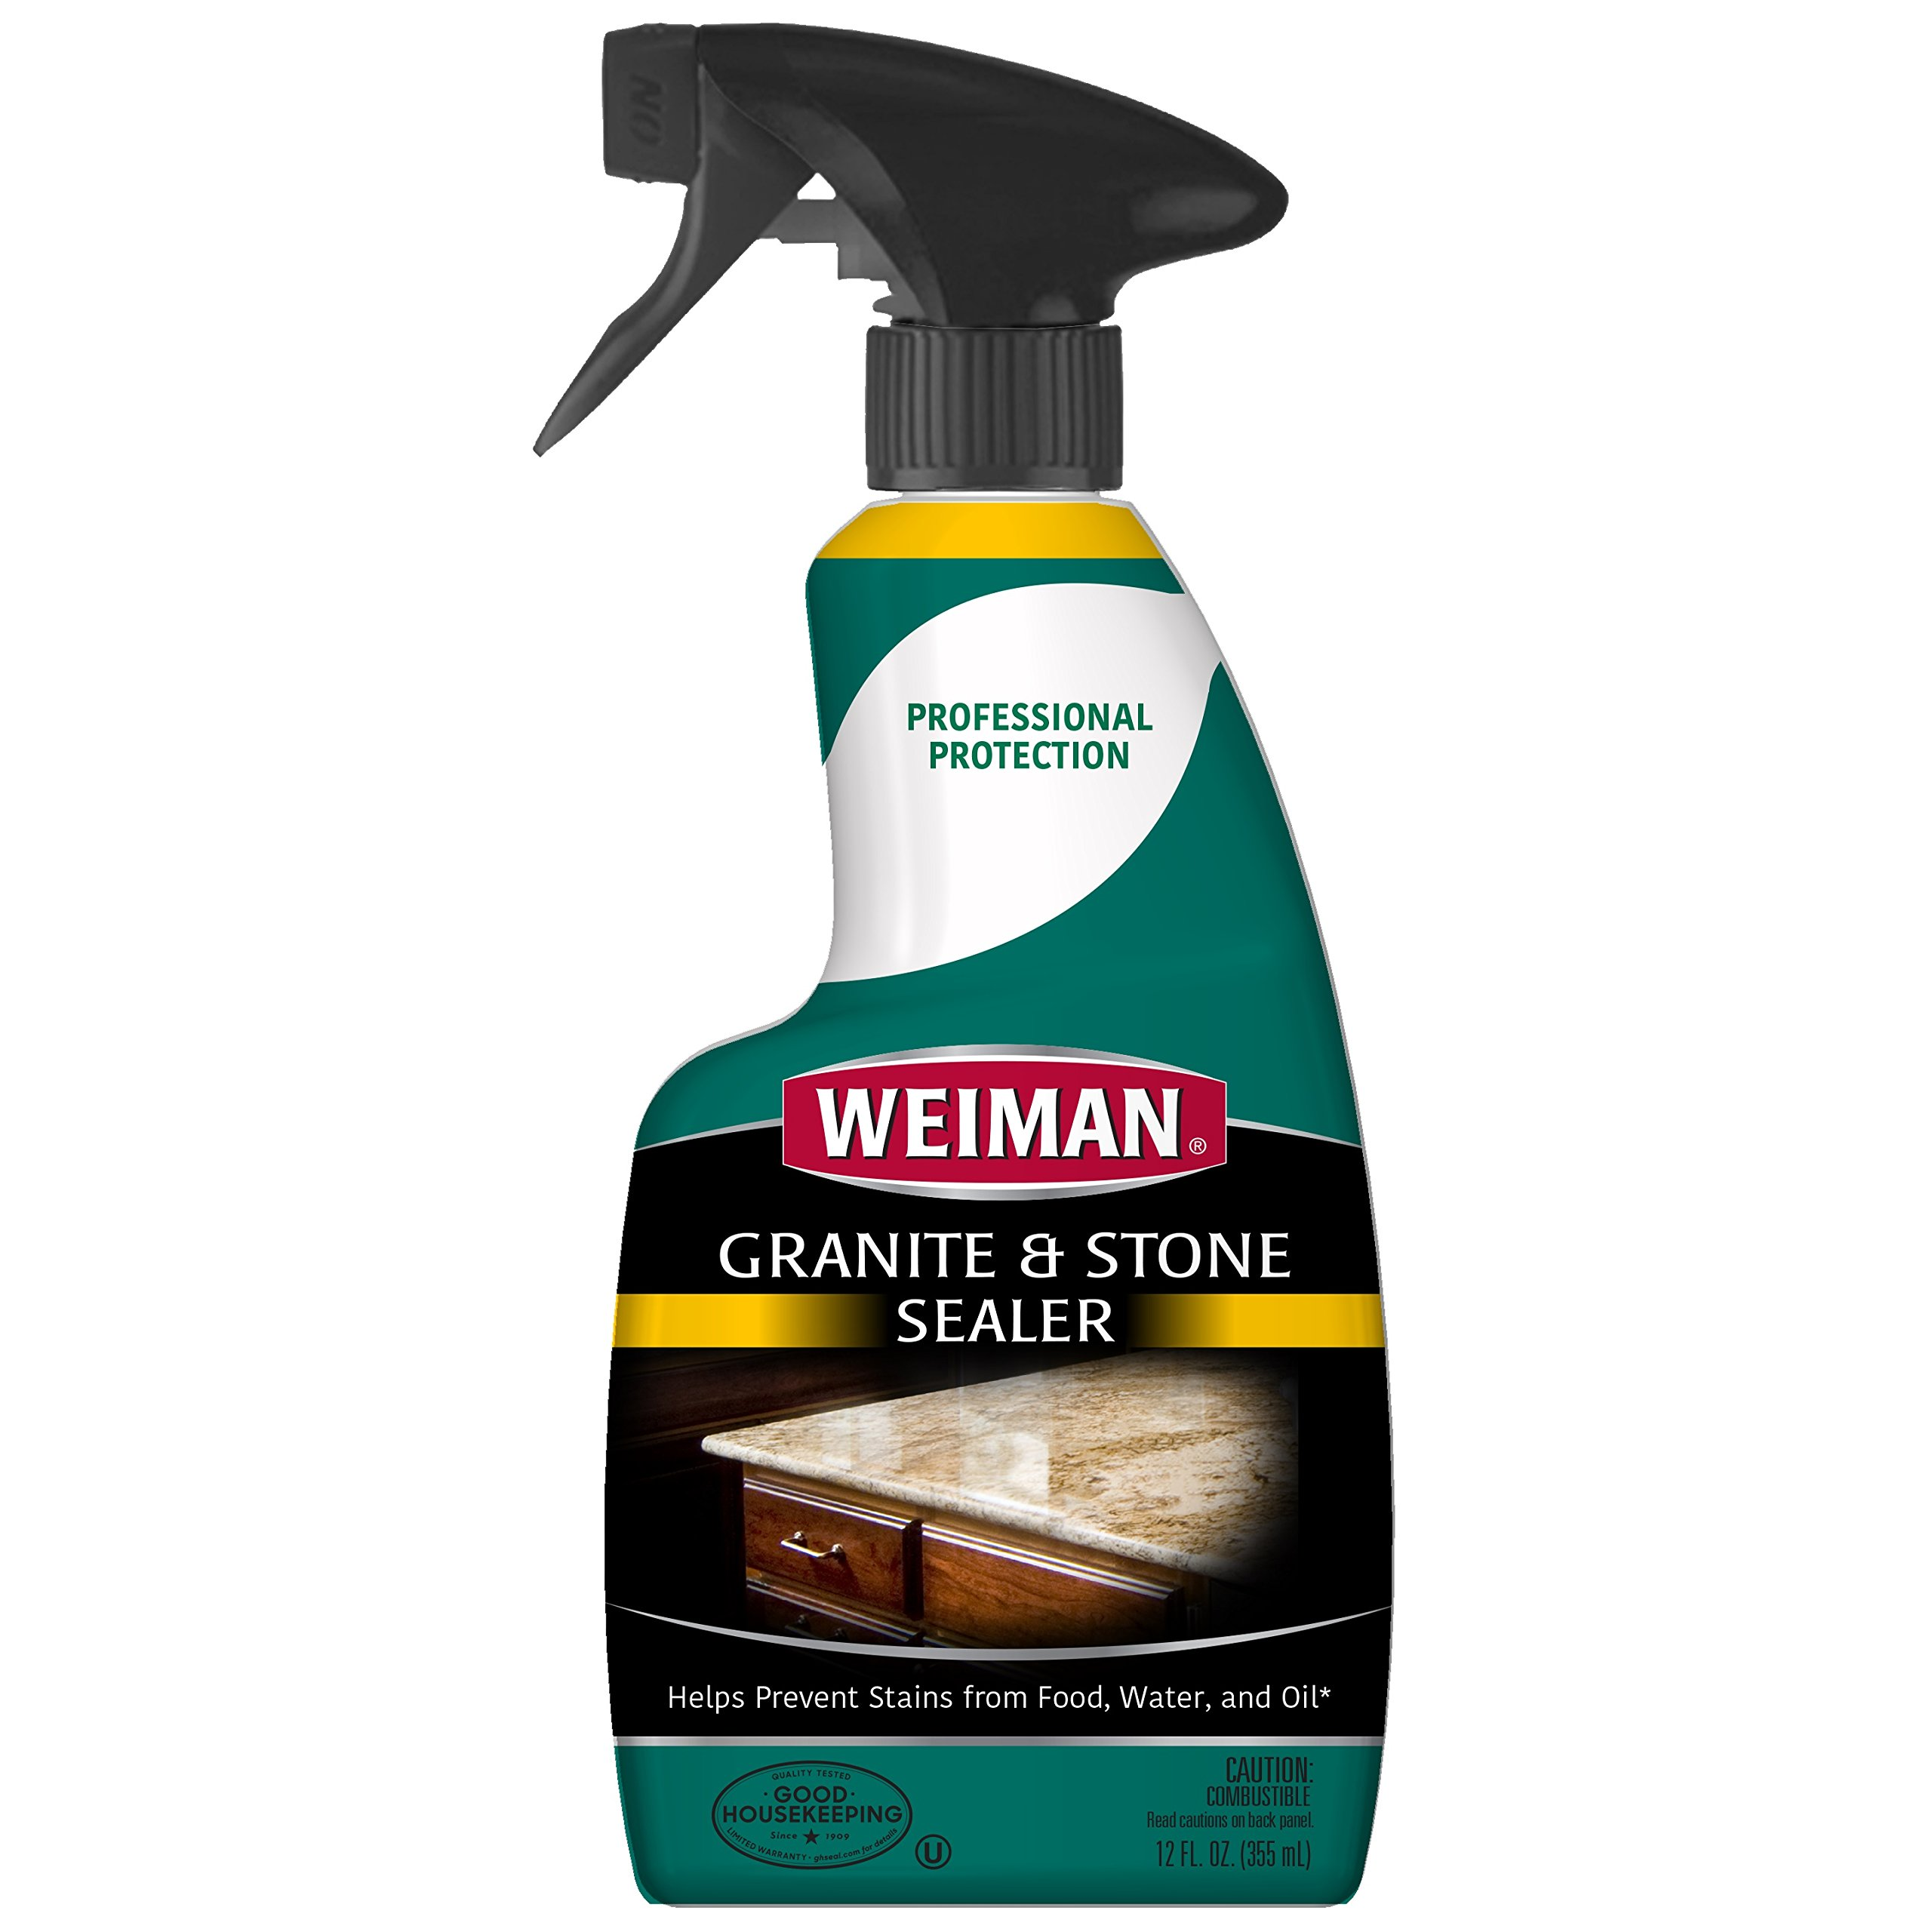 Weiman Granite Stone Sealer - 12 Ounce - For Granite Marble Soapstone Quartz Quartzite Slate Limestone Corian Laminate Tile Countertop and More